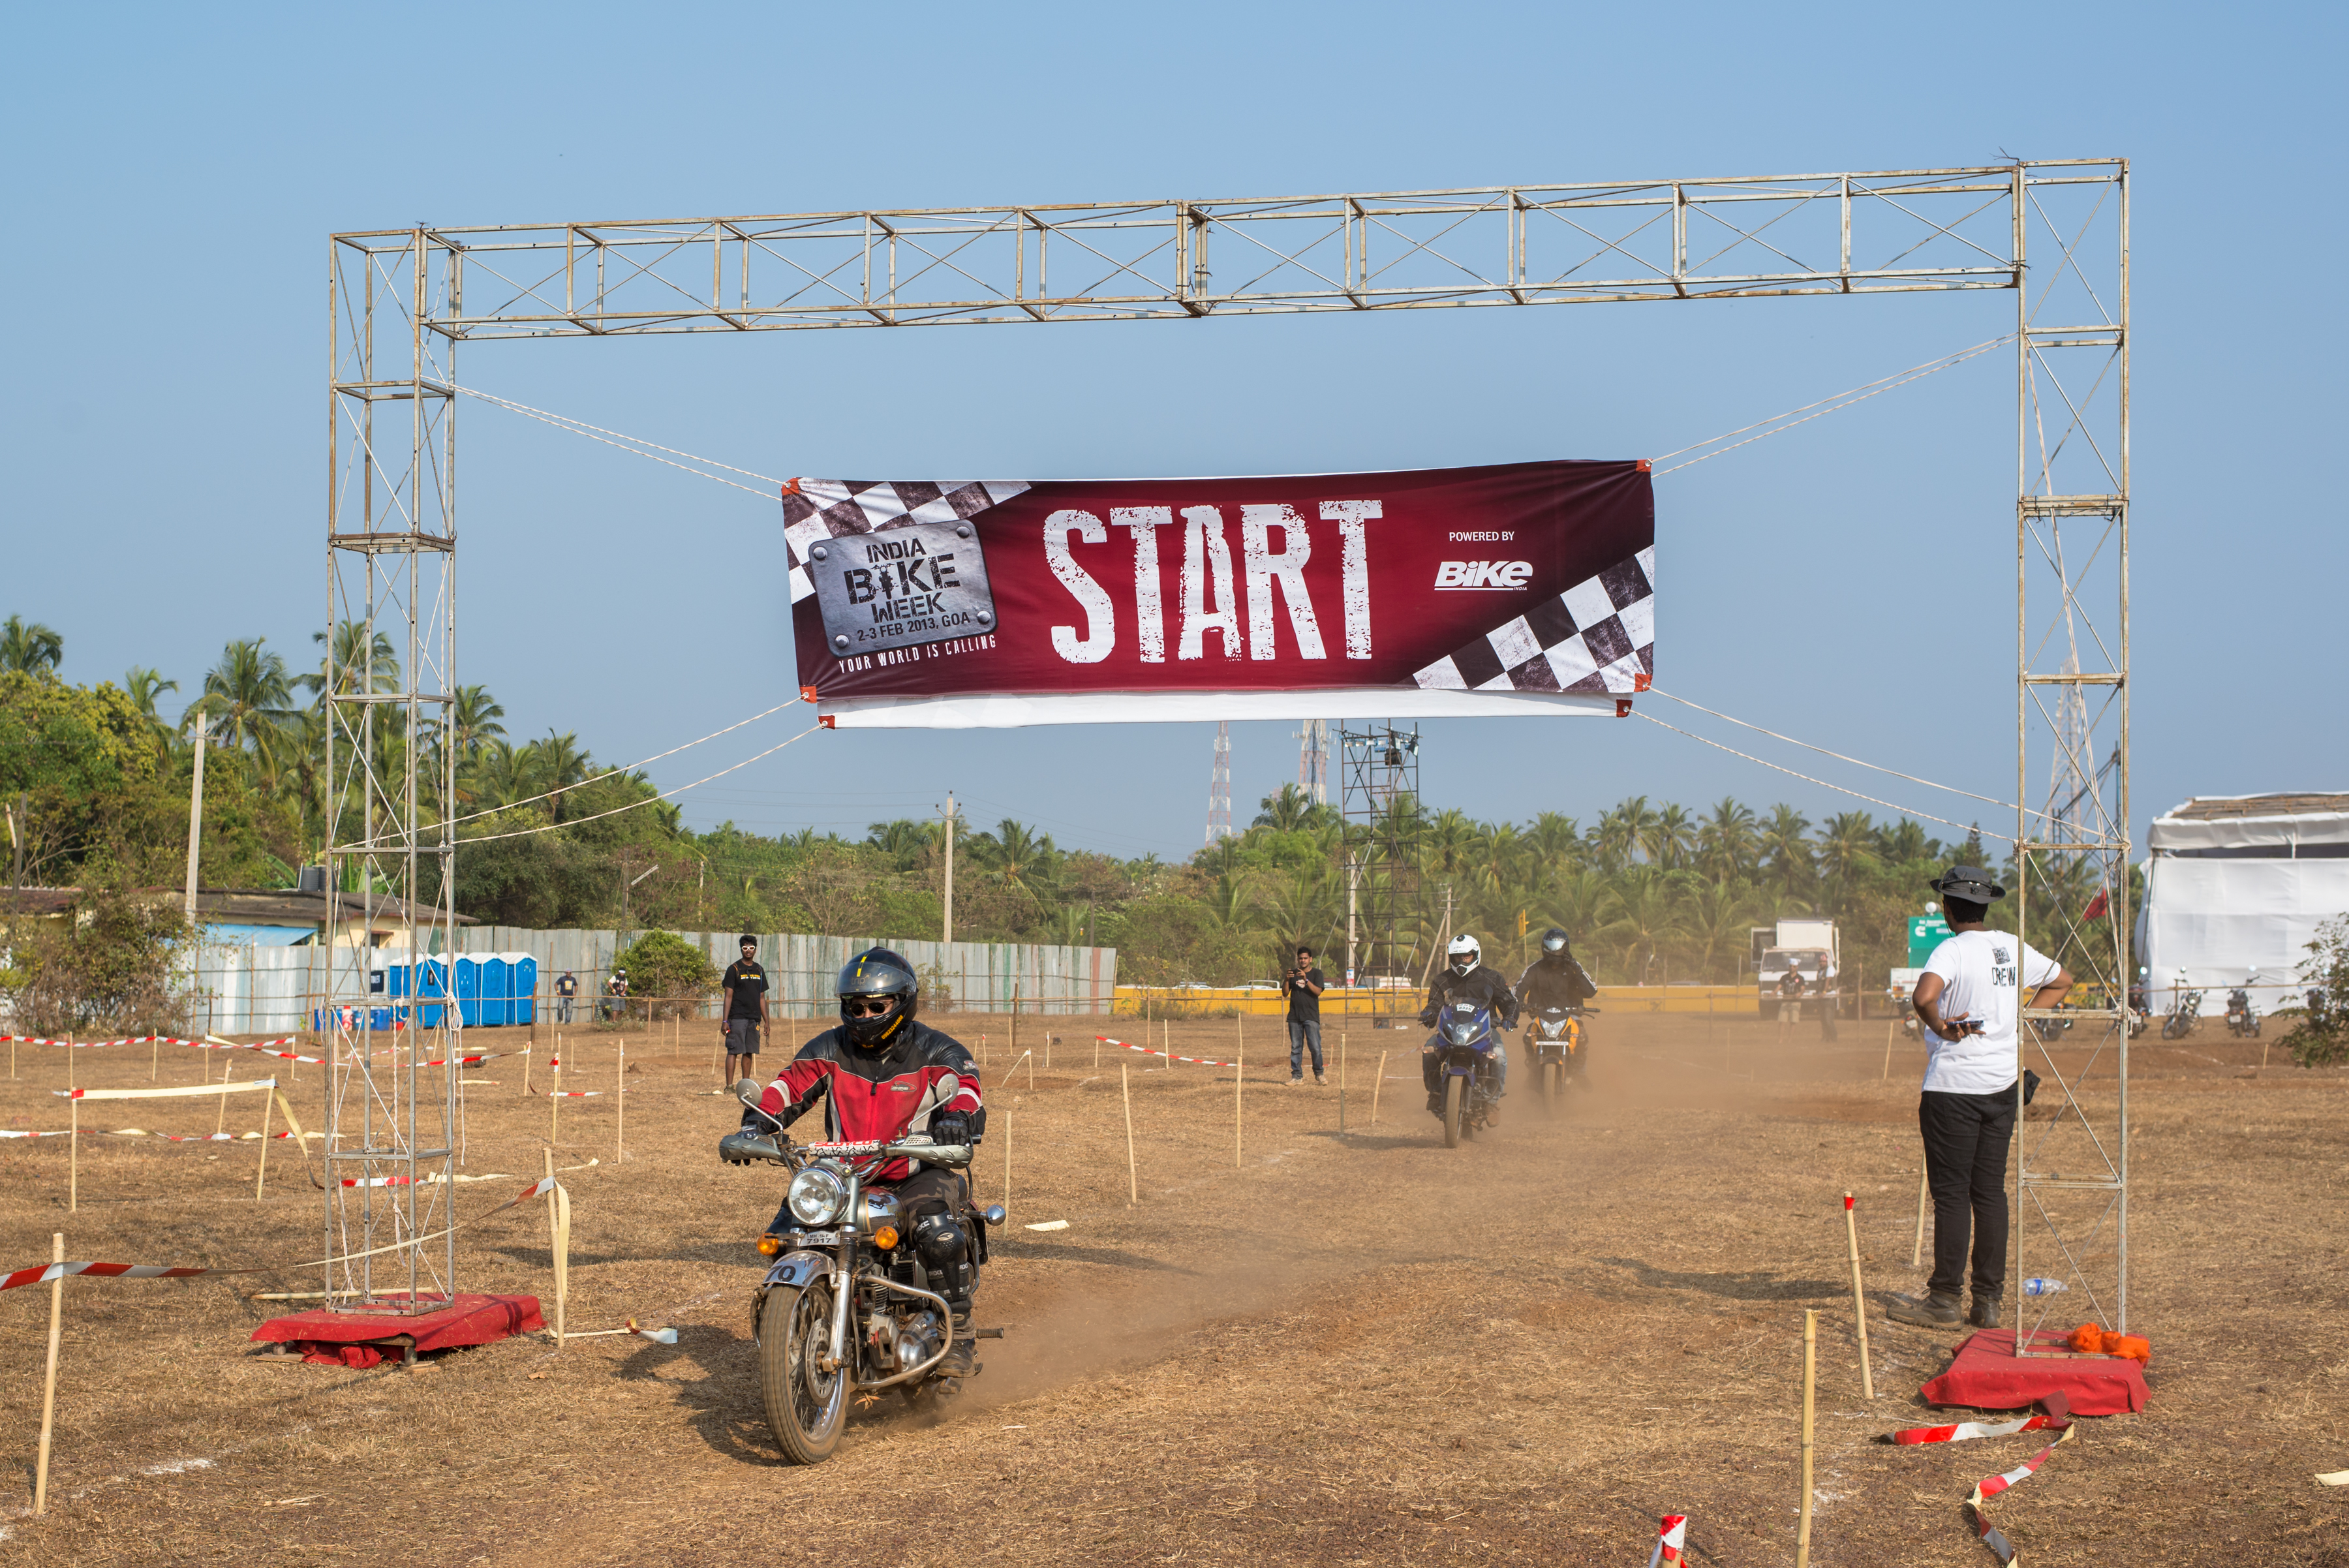 One of the most popular events at the festival was the dirt track races.